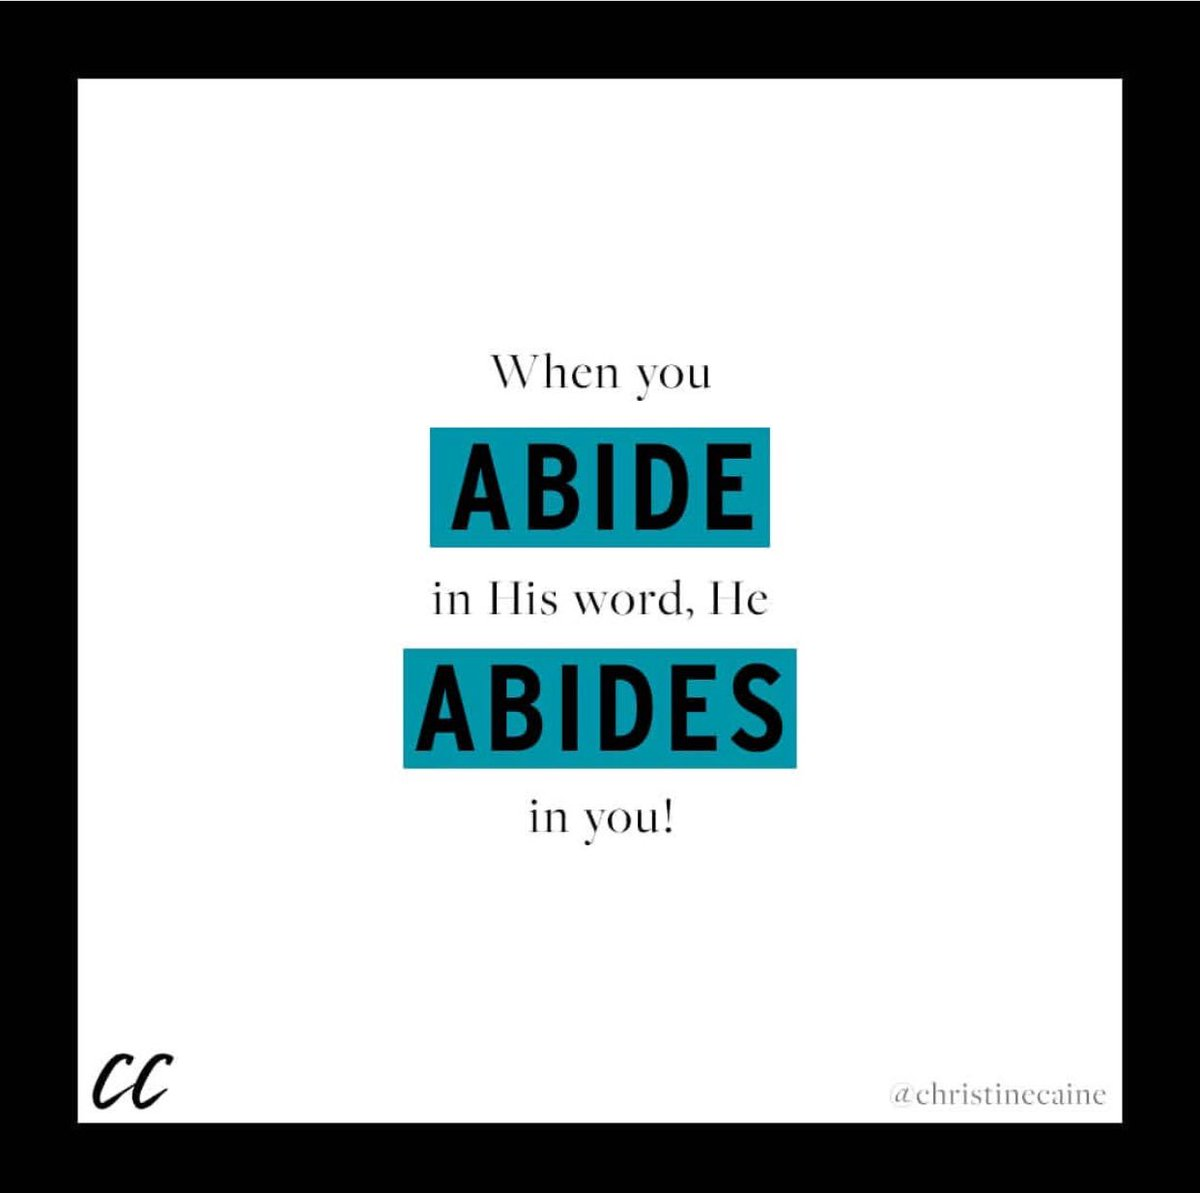 christine caine on twitter when you abide in his word he abides